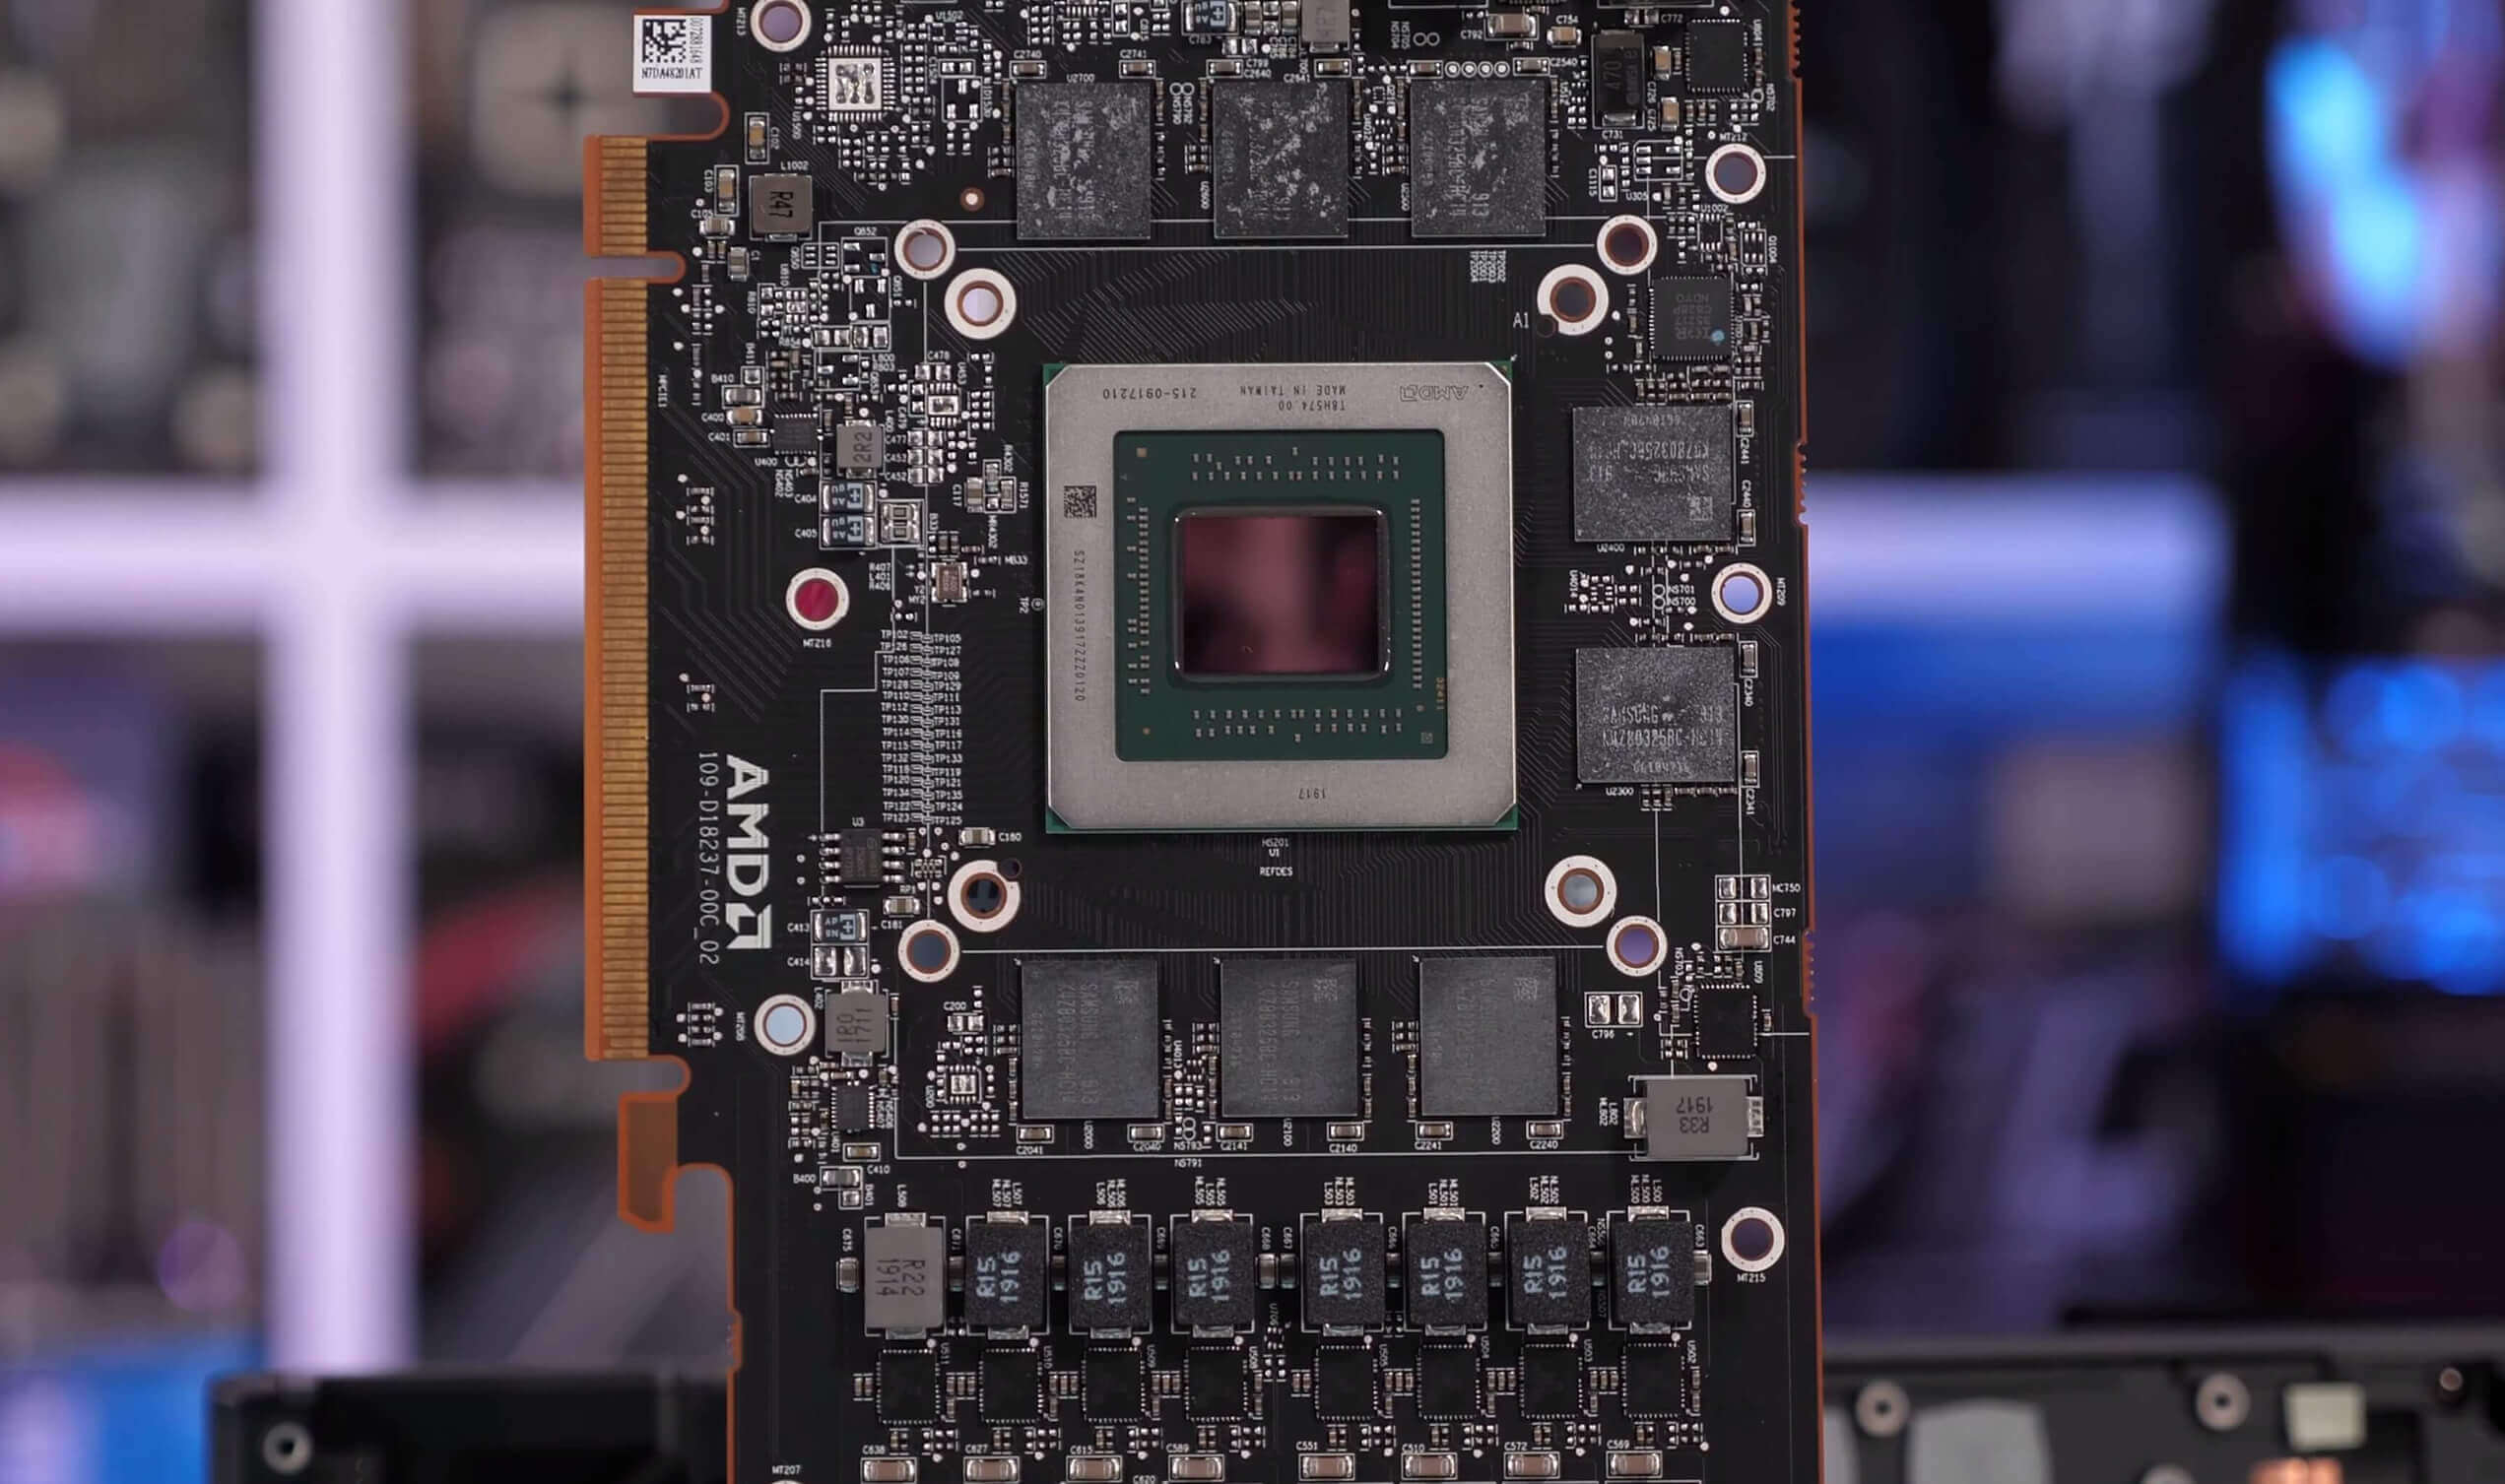 AMD recommends Radeon RX 5600 XT owners to update vBIOS that improves memory speed to 14 Gbps